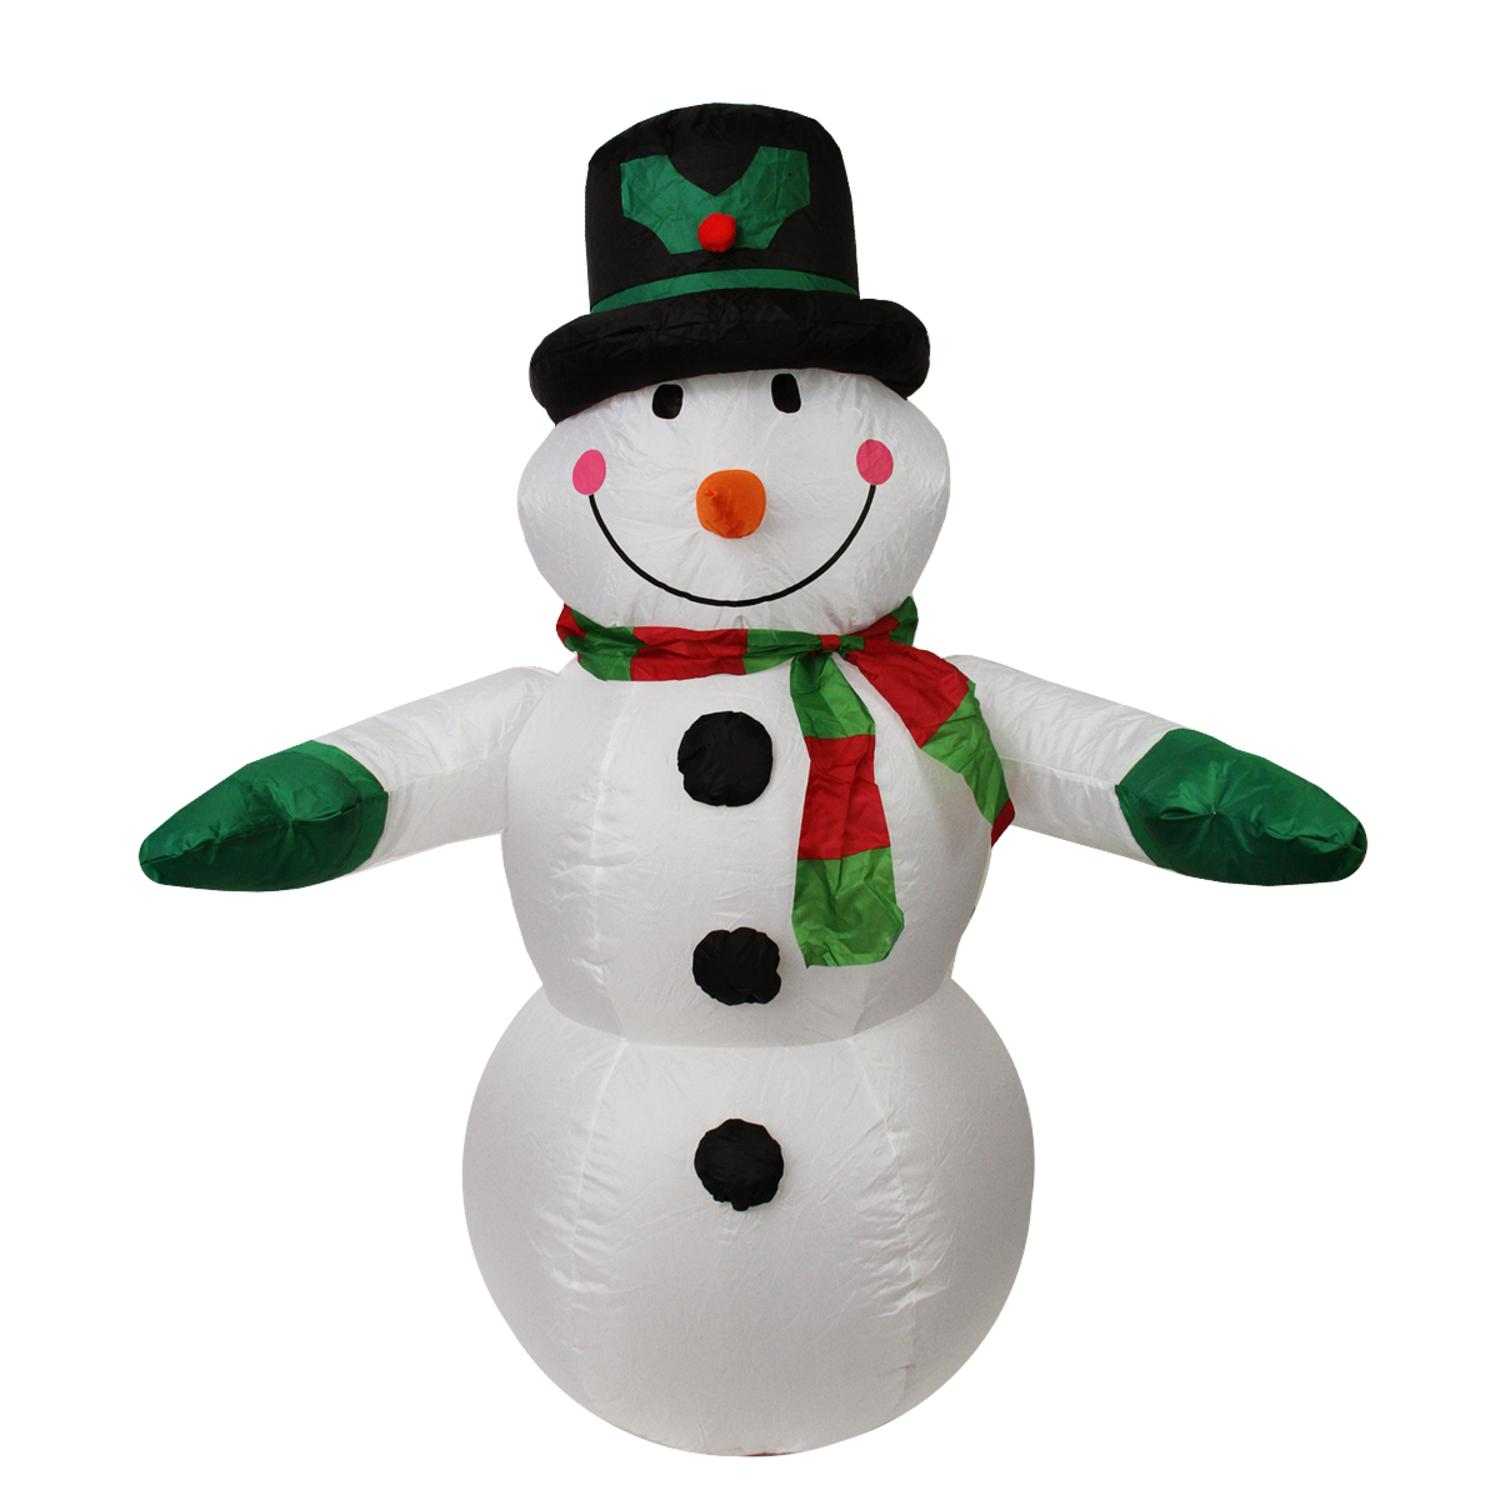 Cheap Inflatable Yard Decorations: Wholesale Inflatables Now Available At Wholesale Central